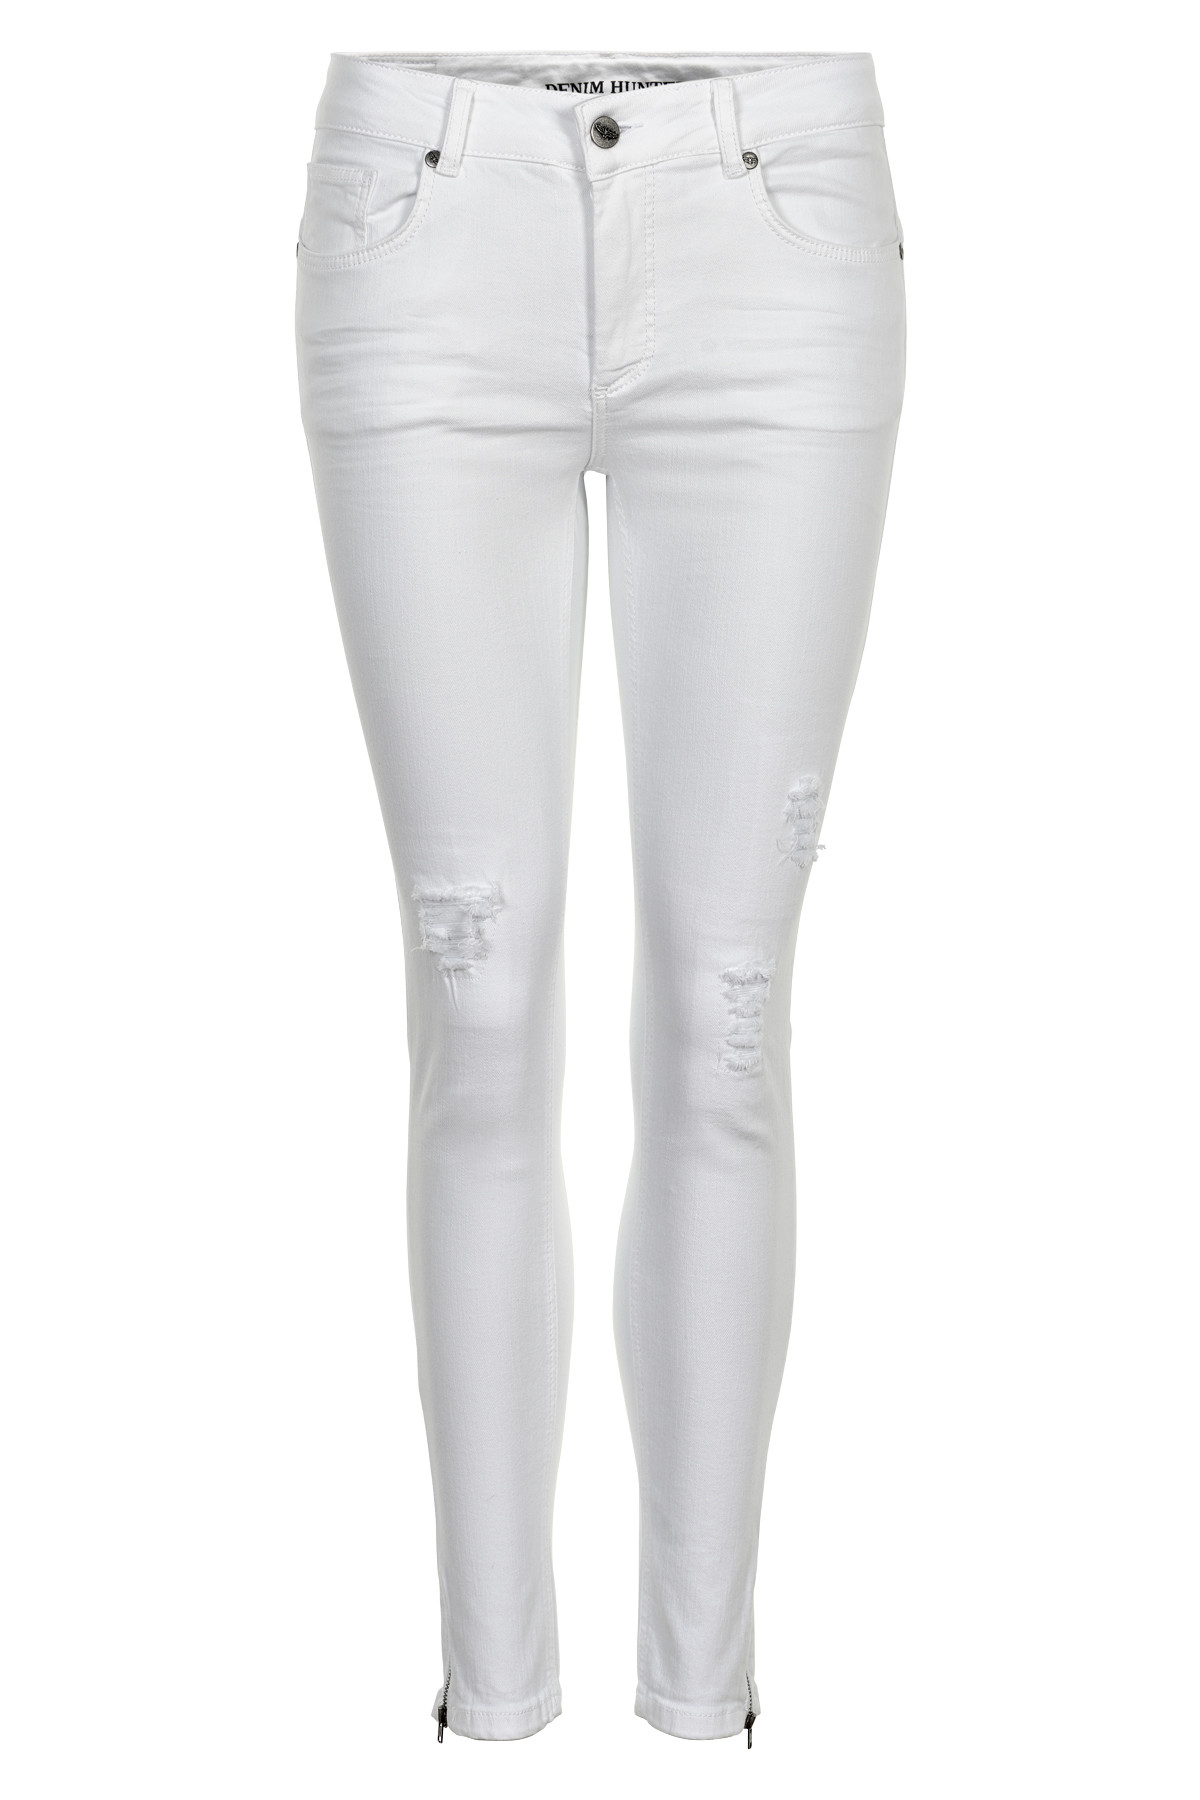 Image of   Denim Hunter CELINA ZIP TORN JEANS 10701894 O (Optical White 30001, 27)